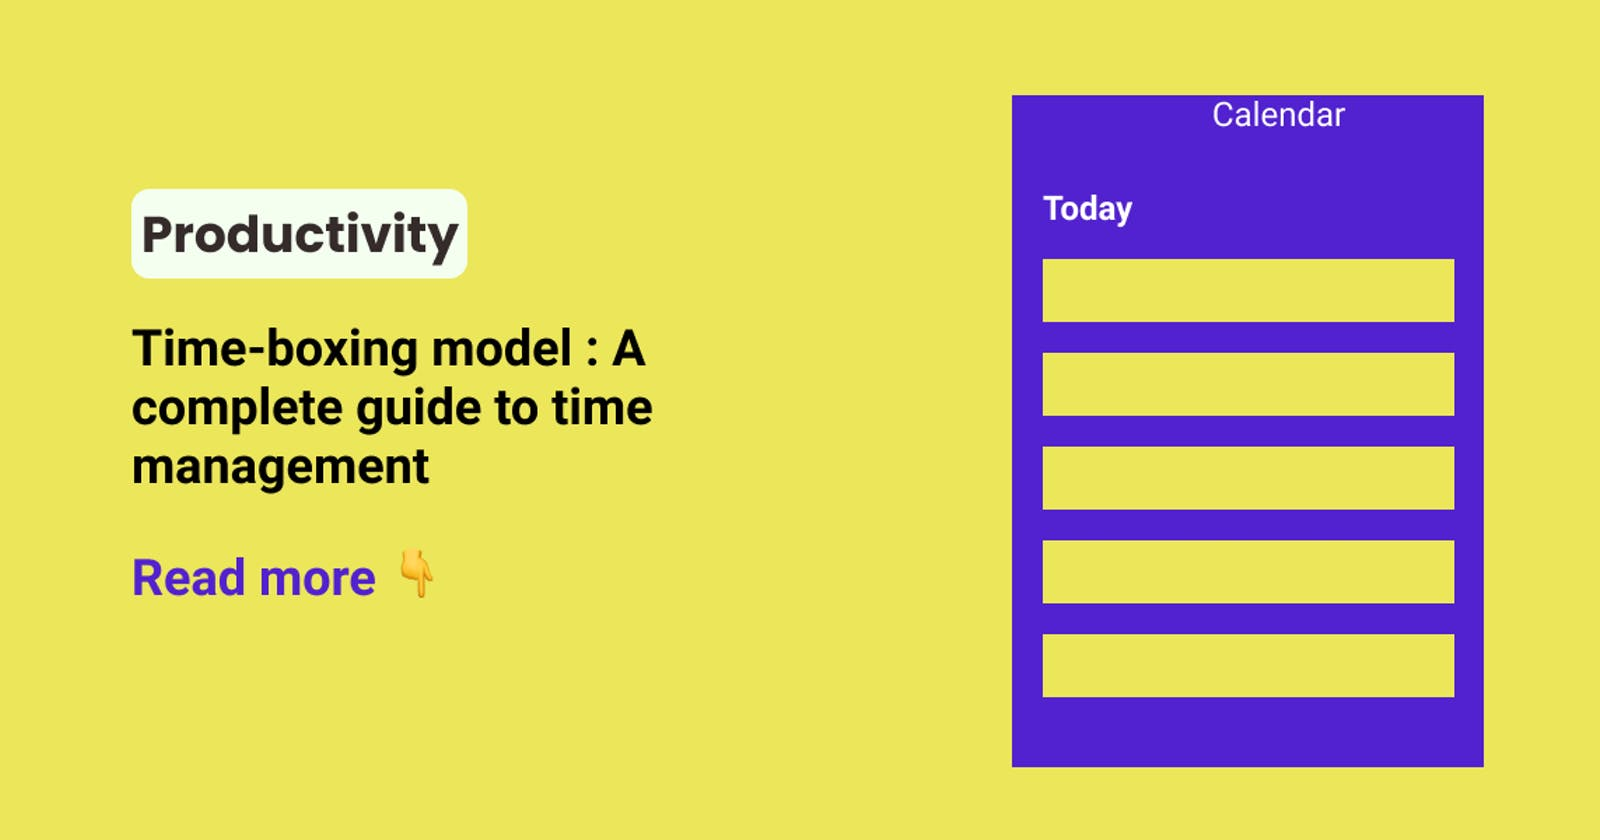 Time-boxing model : A complete guide to time management